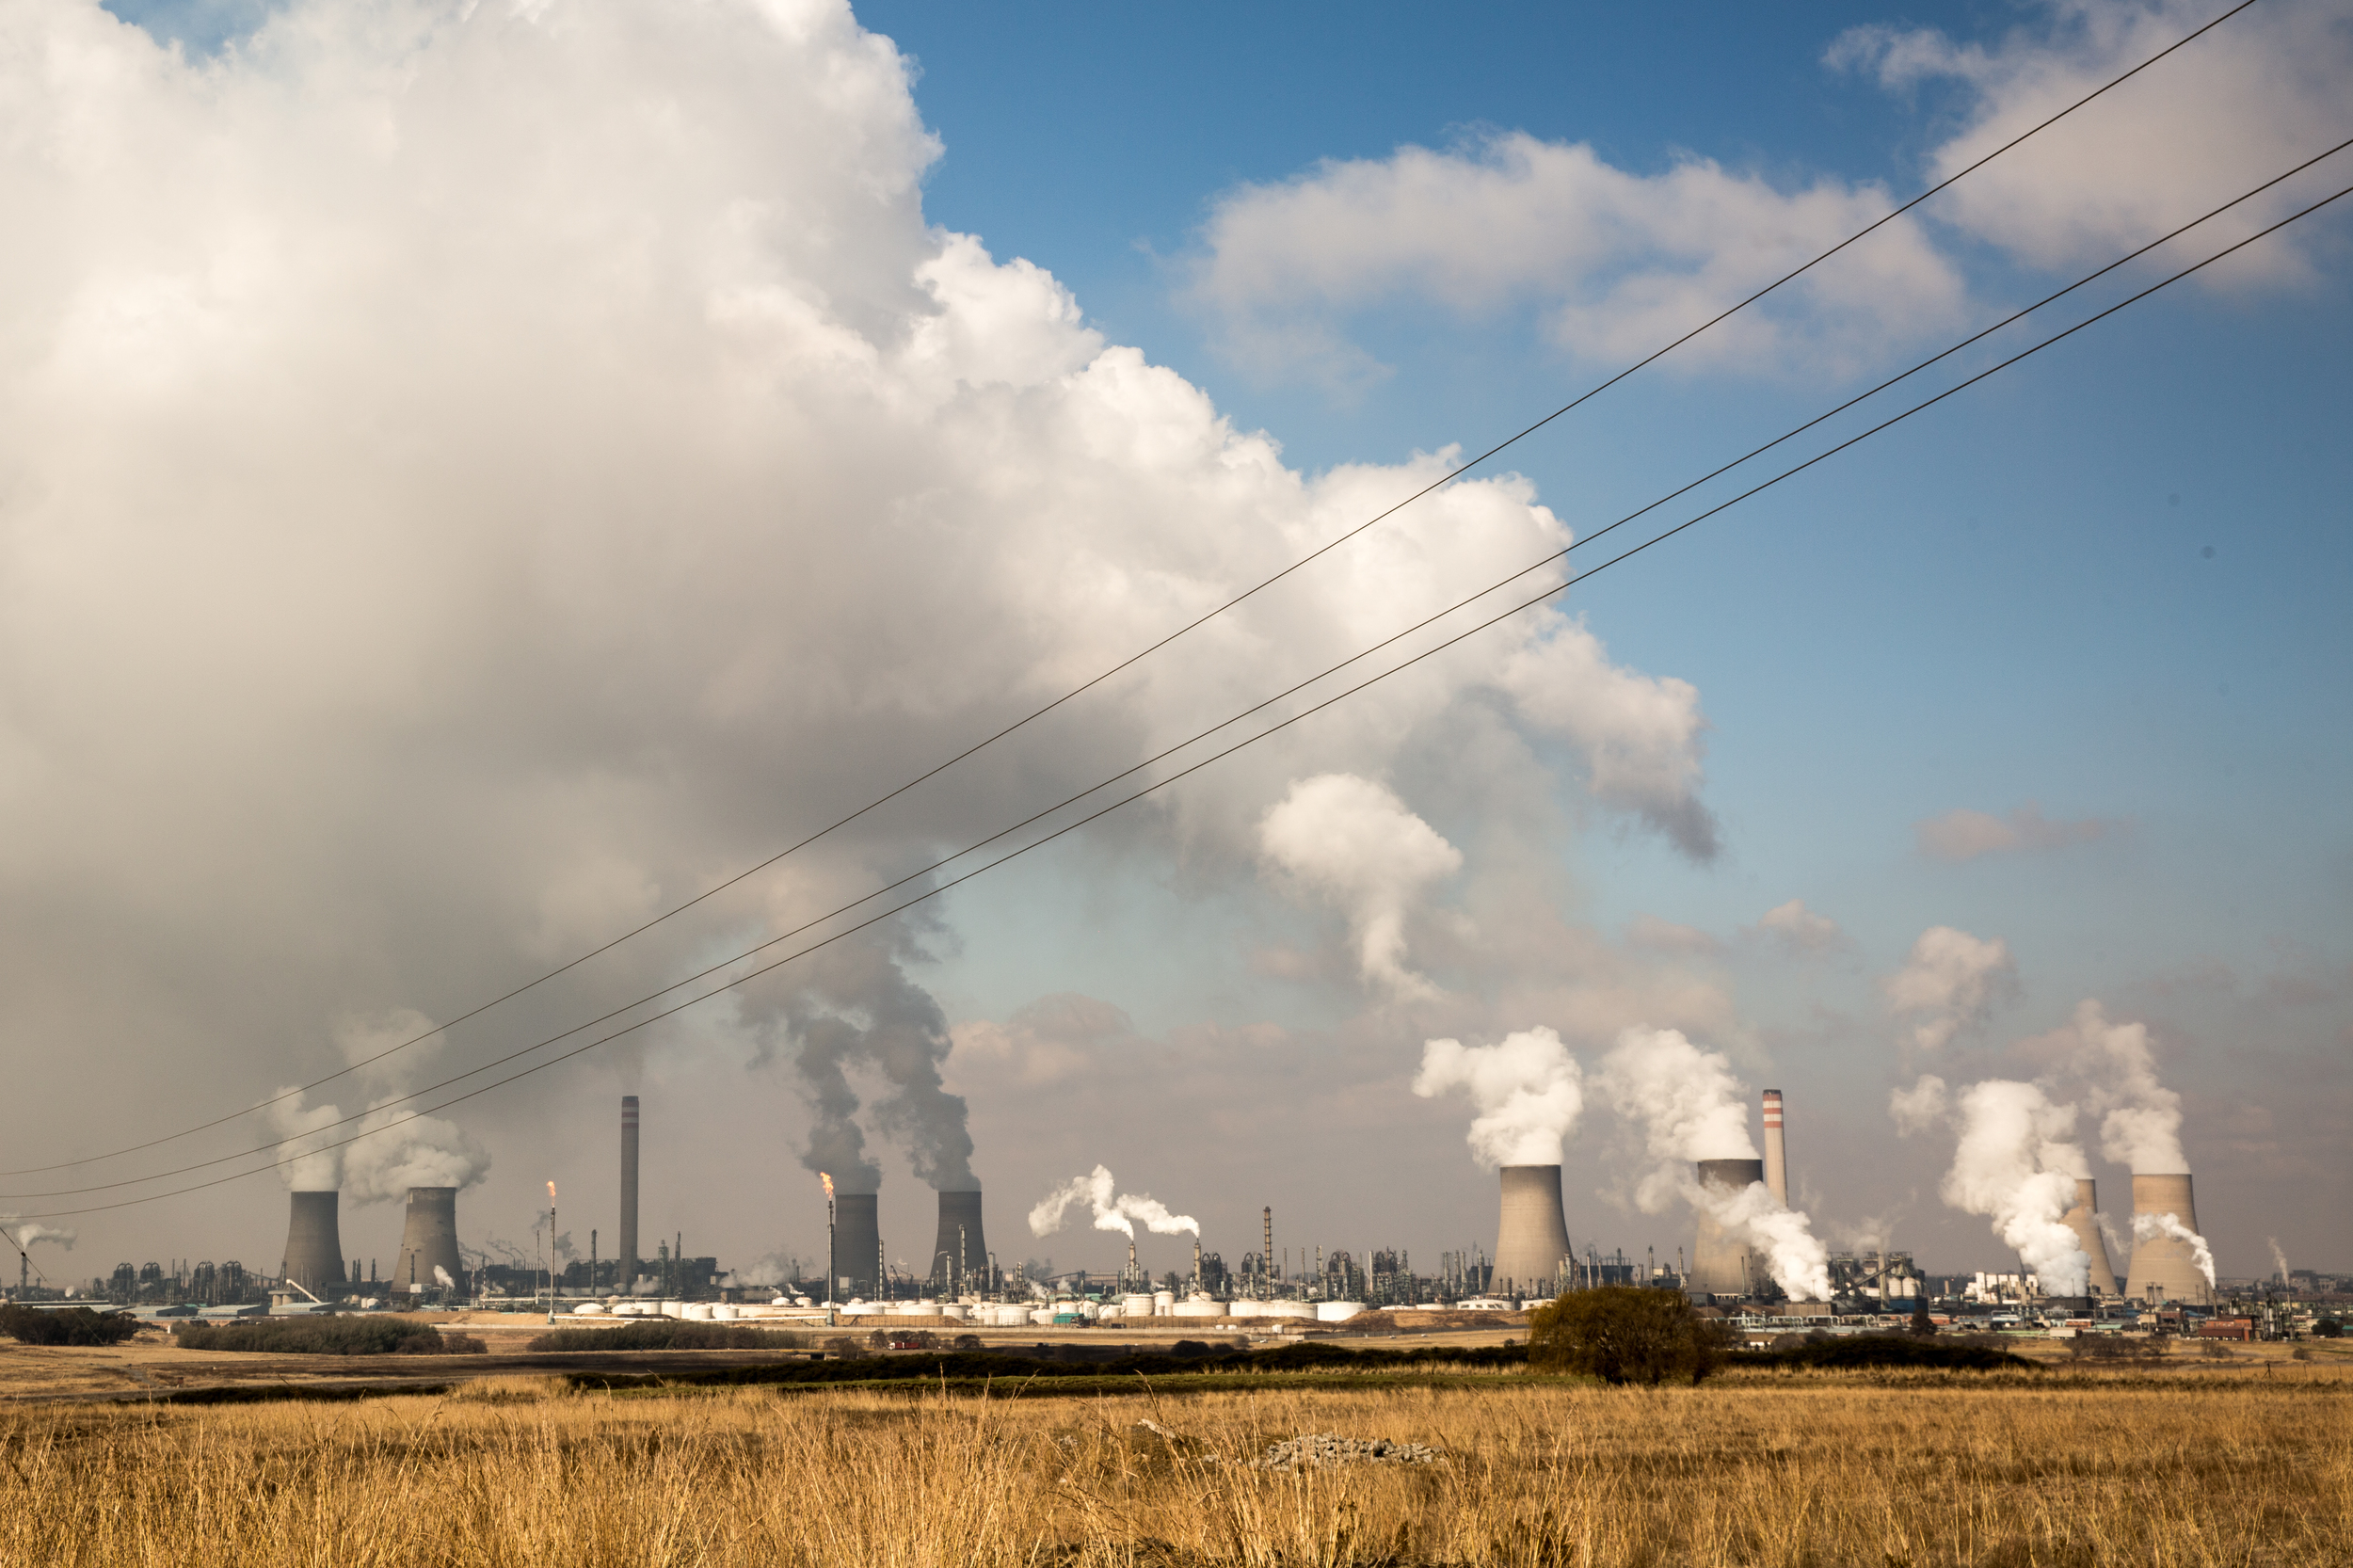 Sasol's plant in Secunda has had the highest rate of C02 emissions on the planet